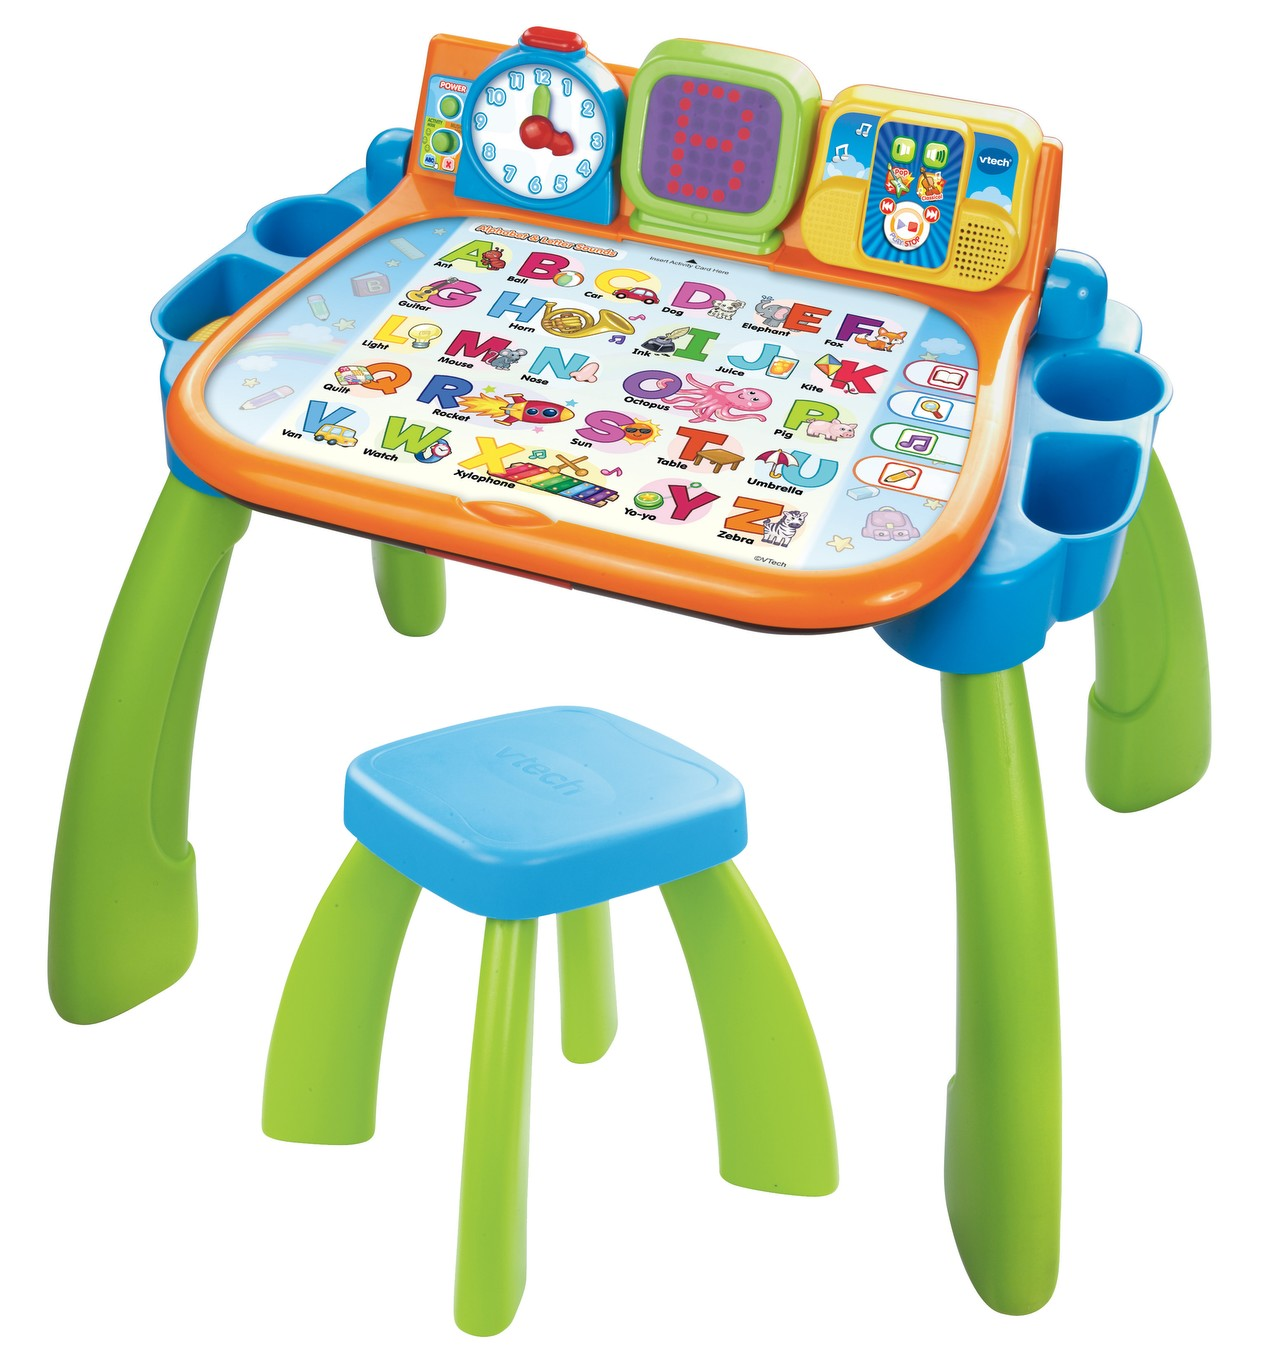 Vtech touch and learn activity desk singapore map